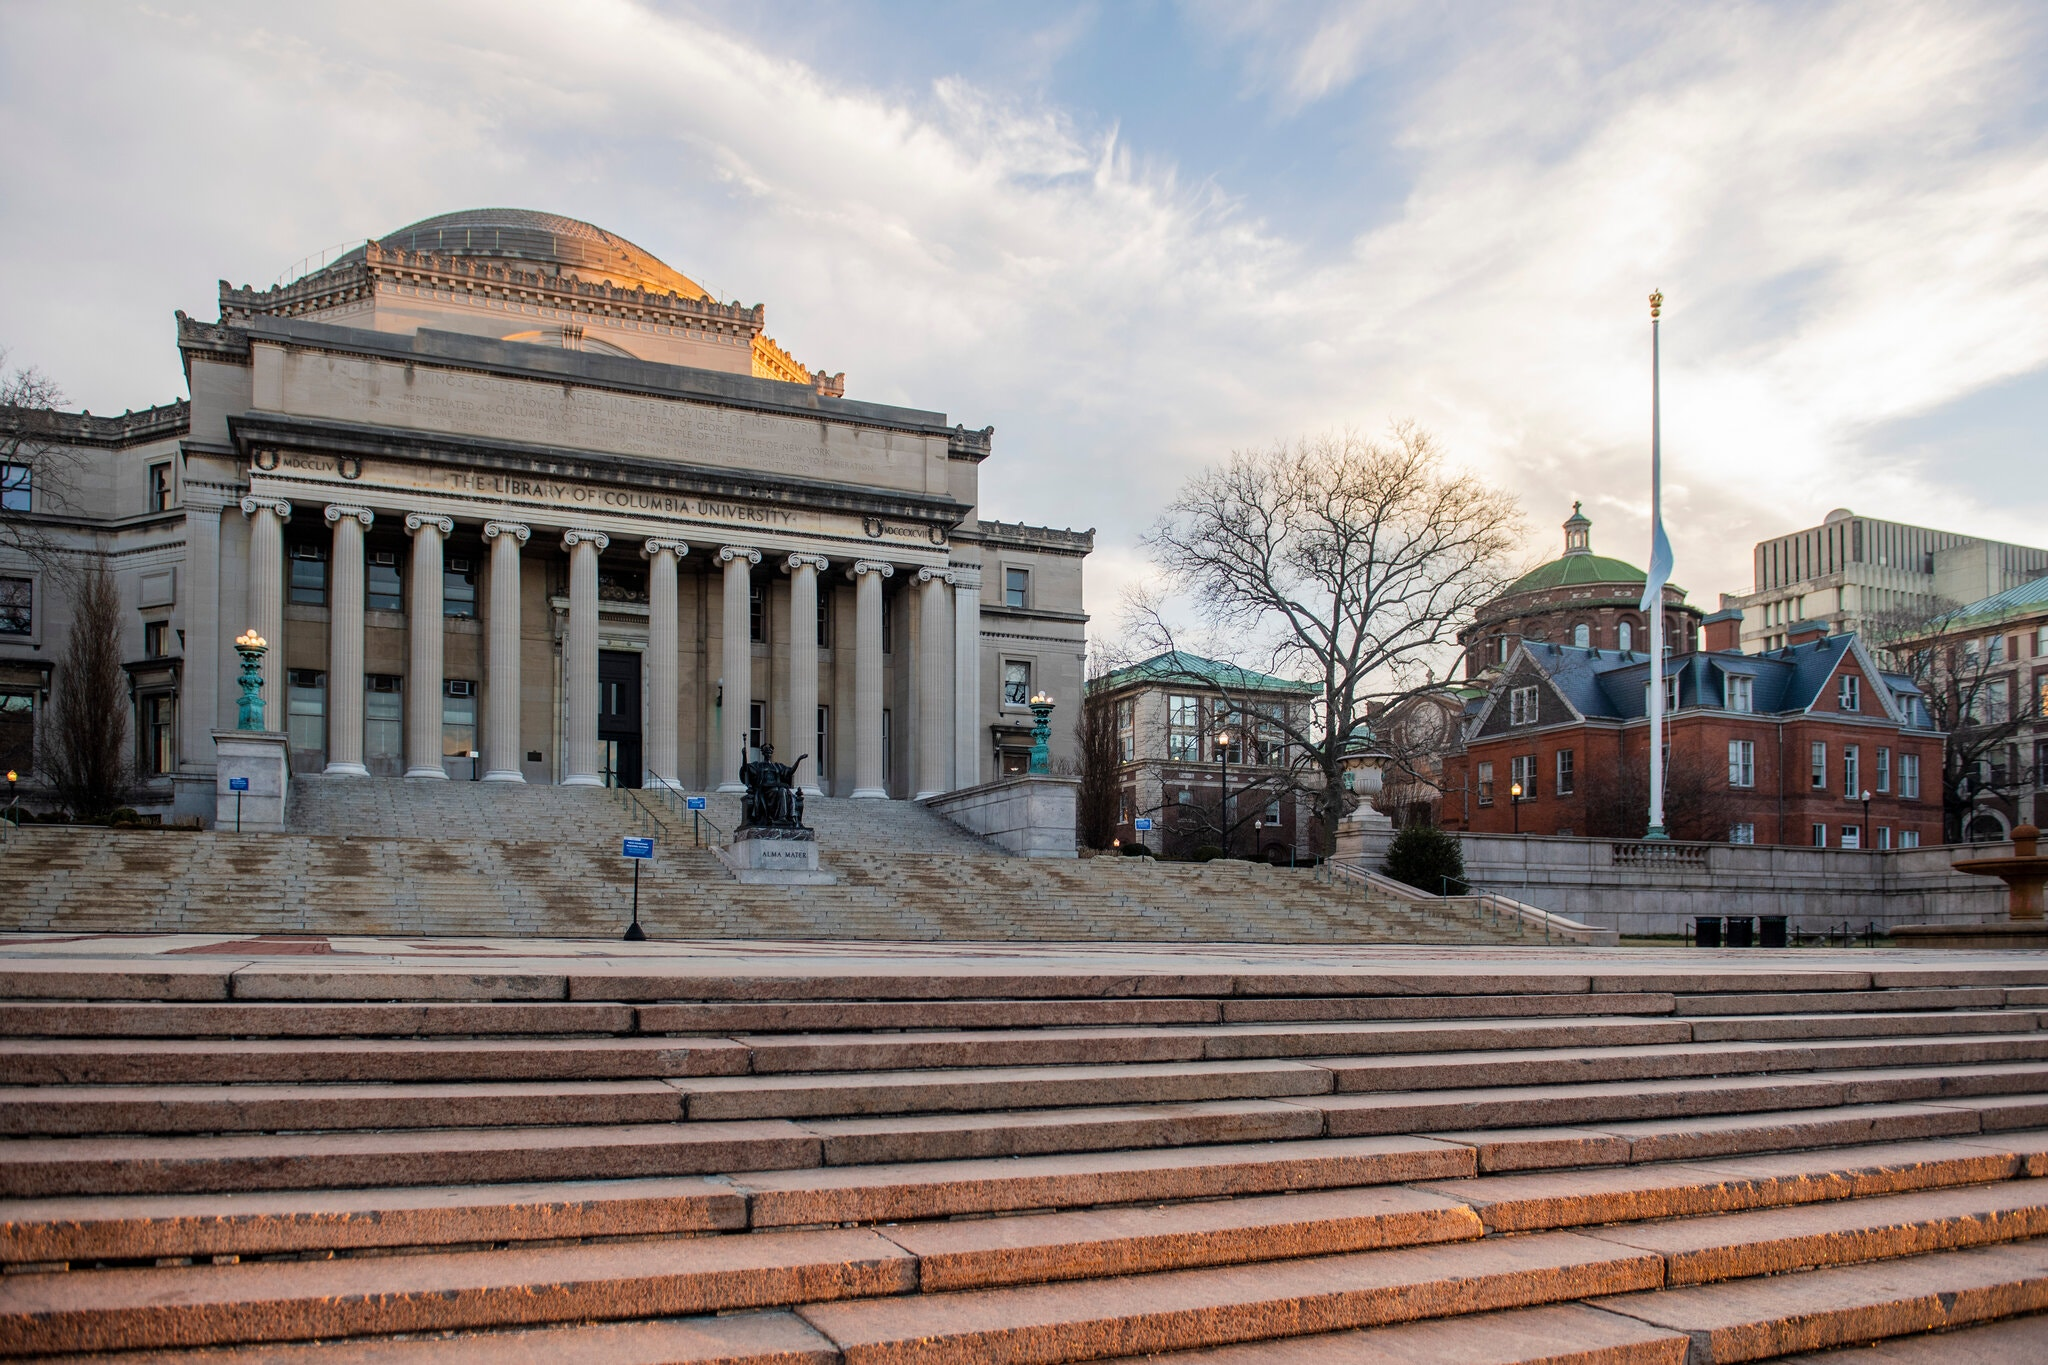 """Columbia Settles a Complicated Sexual Assault Case, """"Despite the Aggressive and Harrowing Attempts to Shame [My Client] Through the Court System, She Has No Regrets About Coming Forward With Her Complaint of Sexual Assault,"""" Attorney Iliana Konidaris Said."""